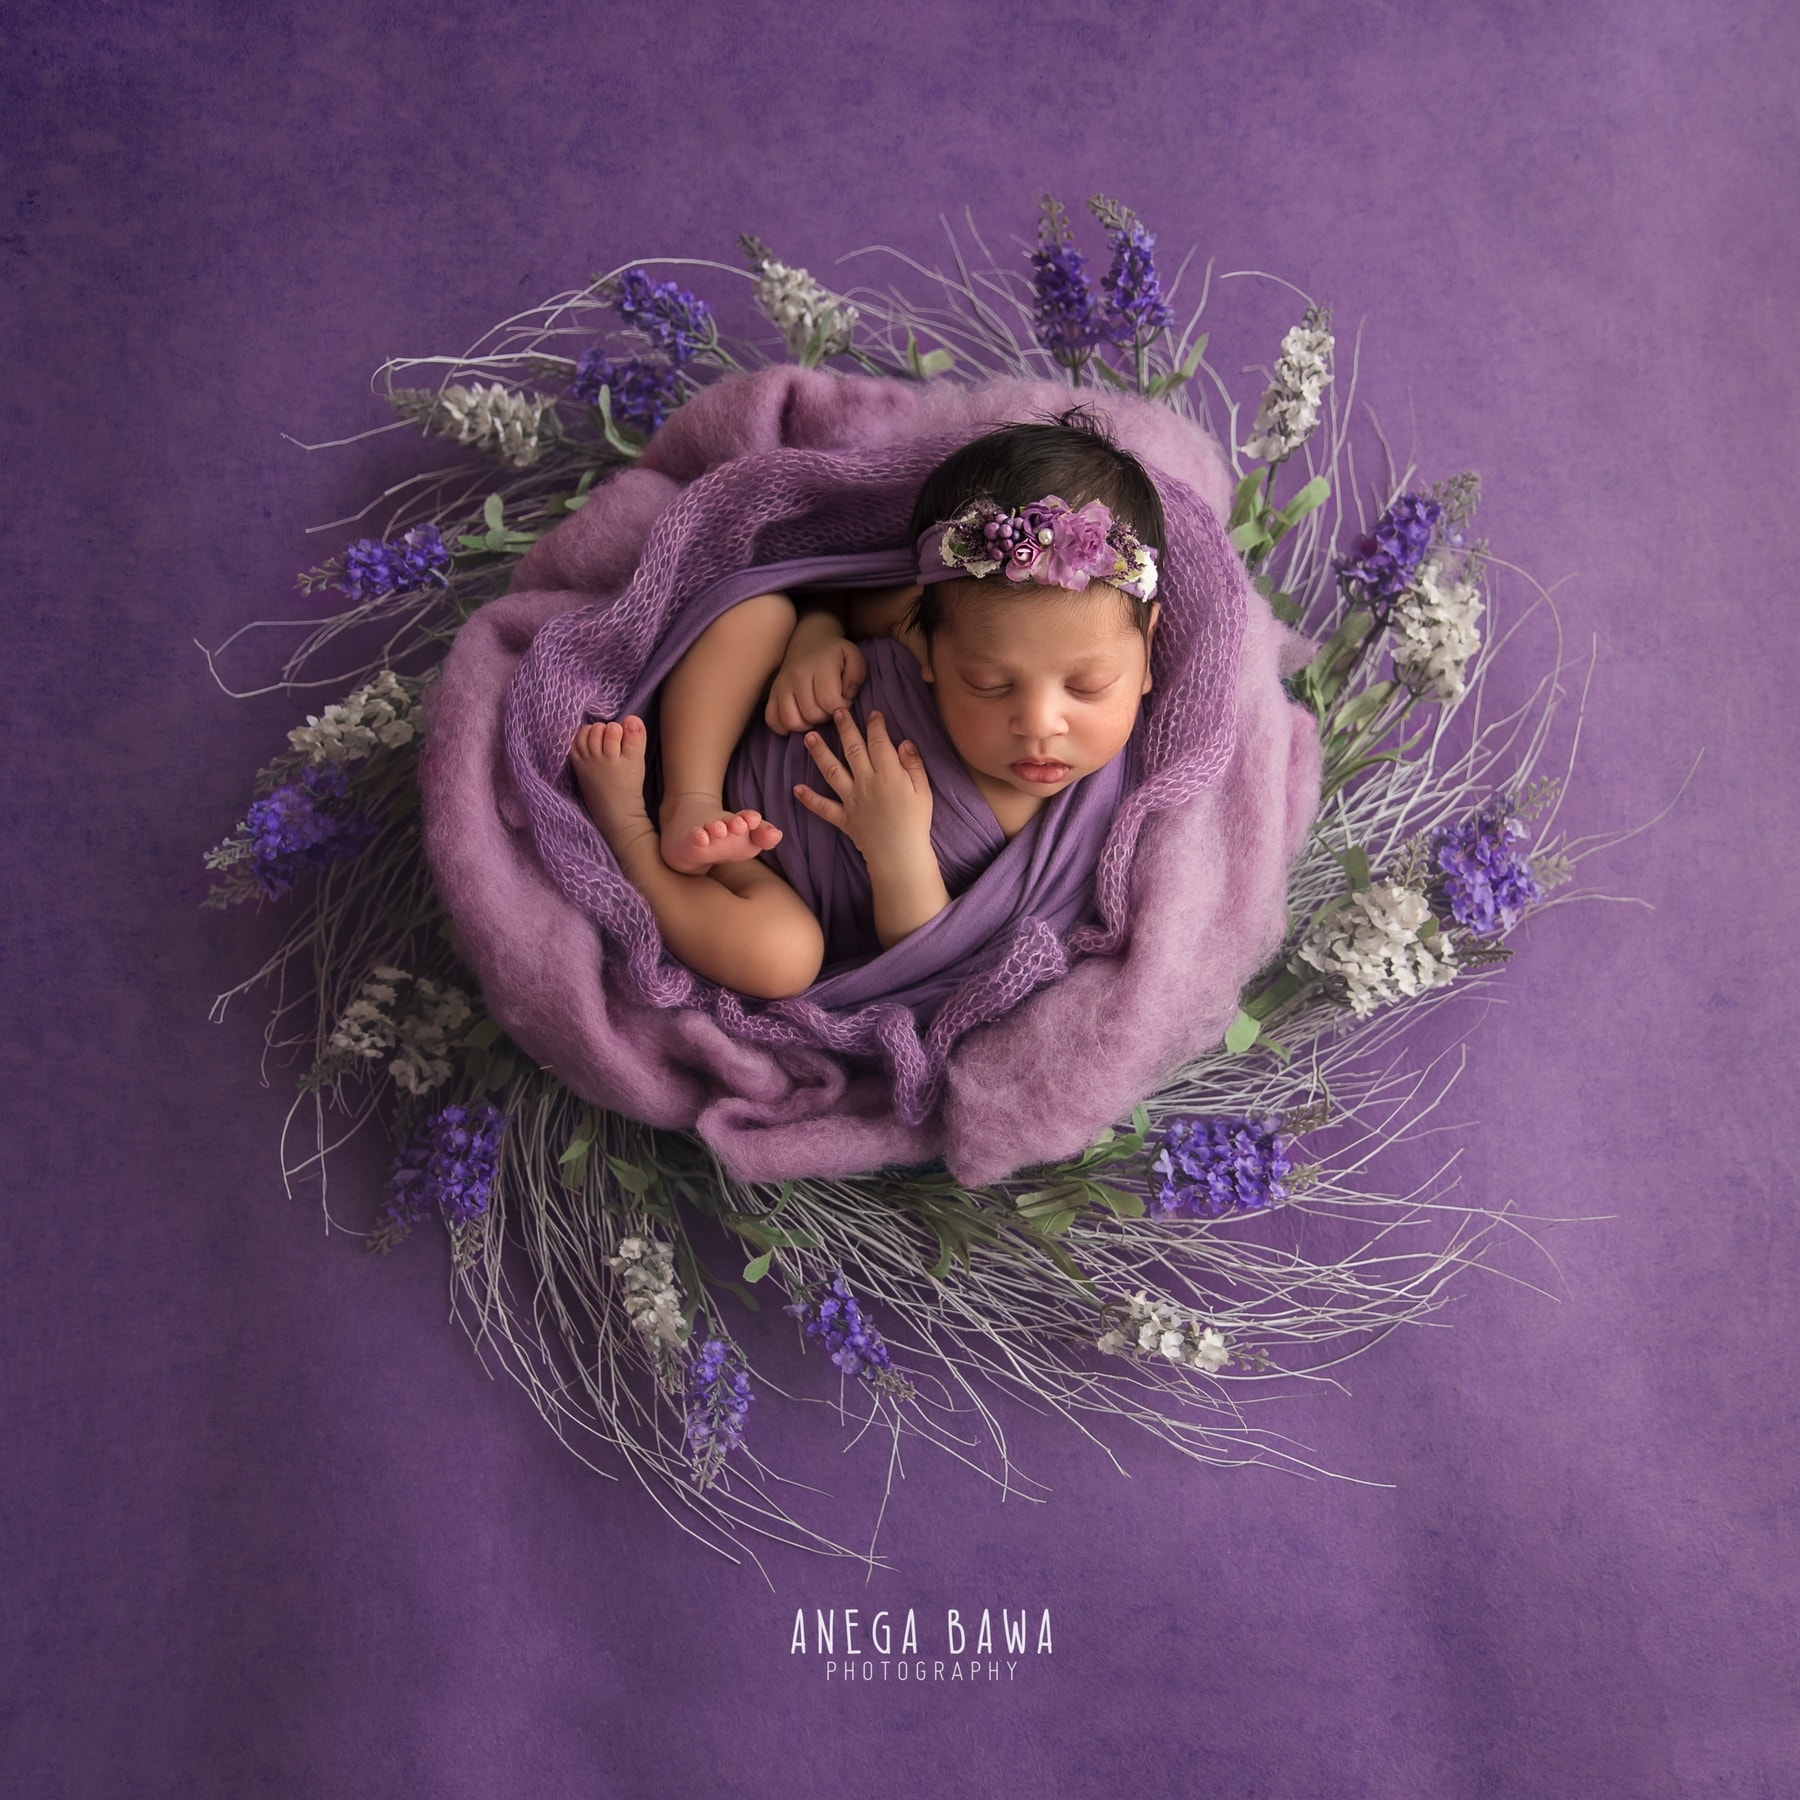 lavender newborn photography delhi 14 days baby girl photoshoot gurgaon anega bawa